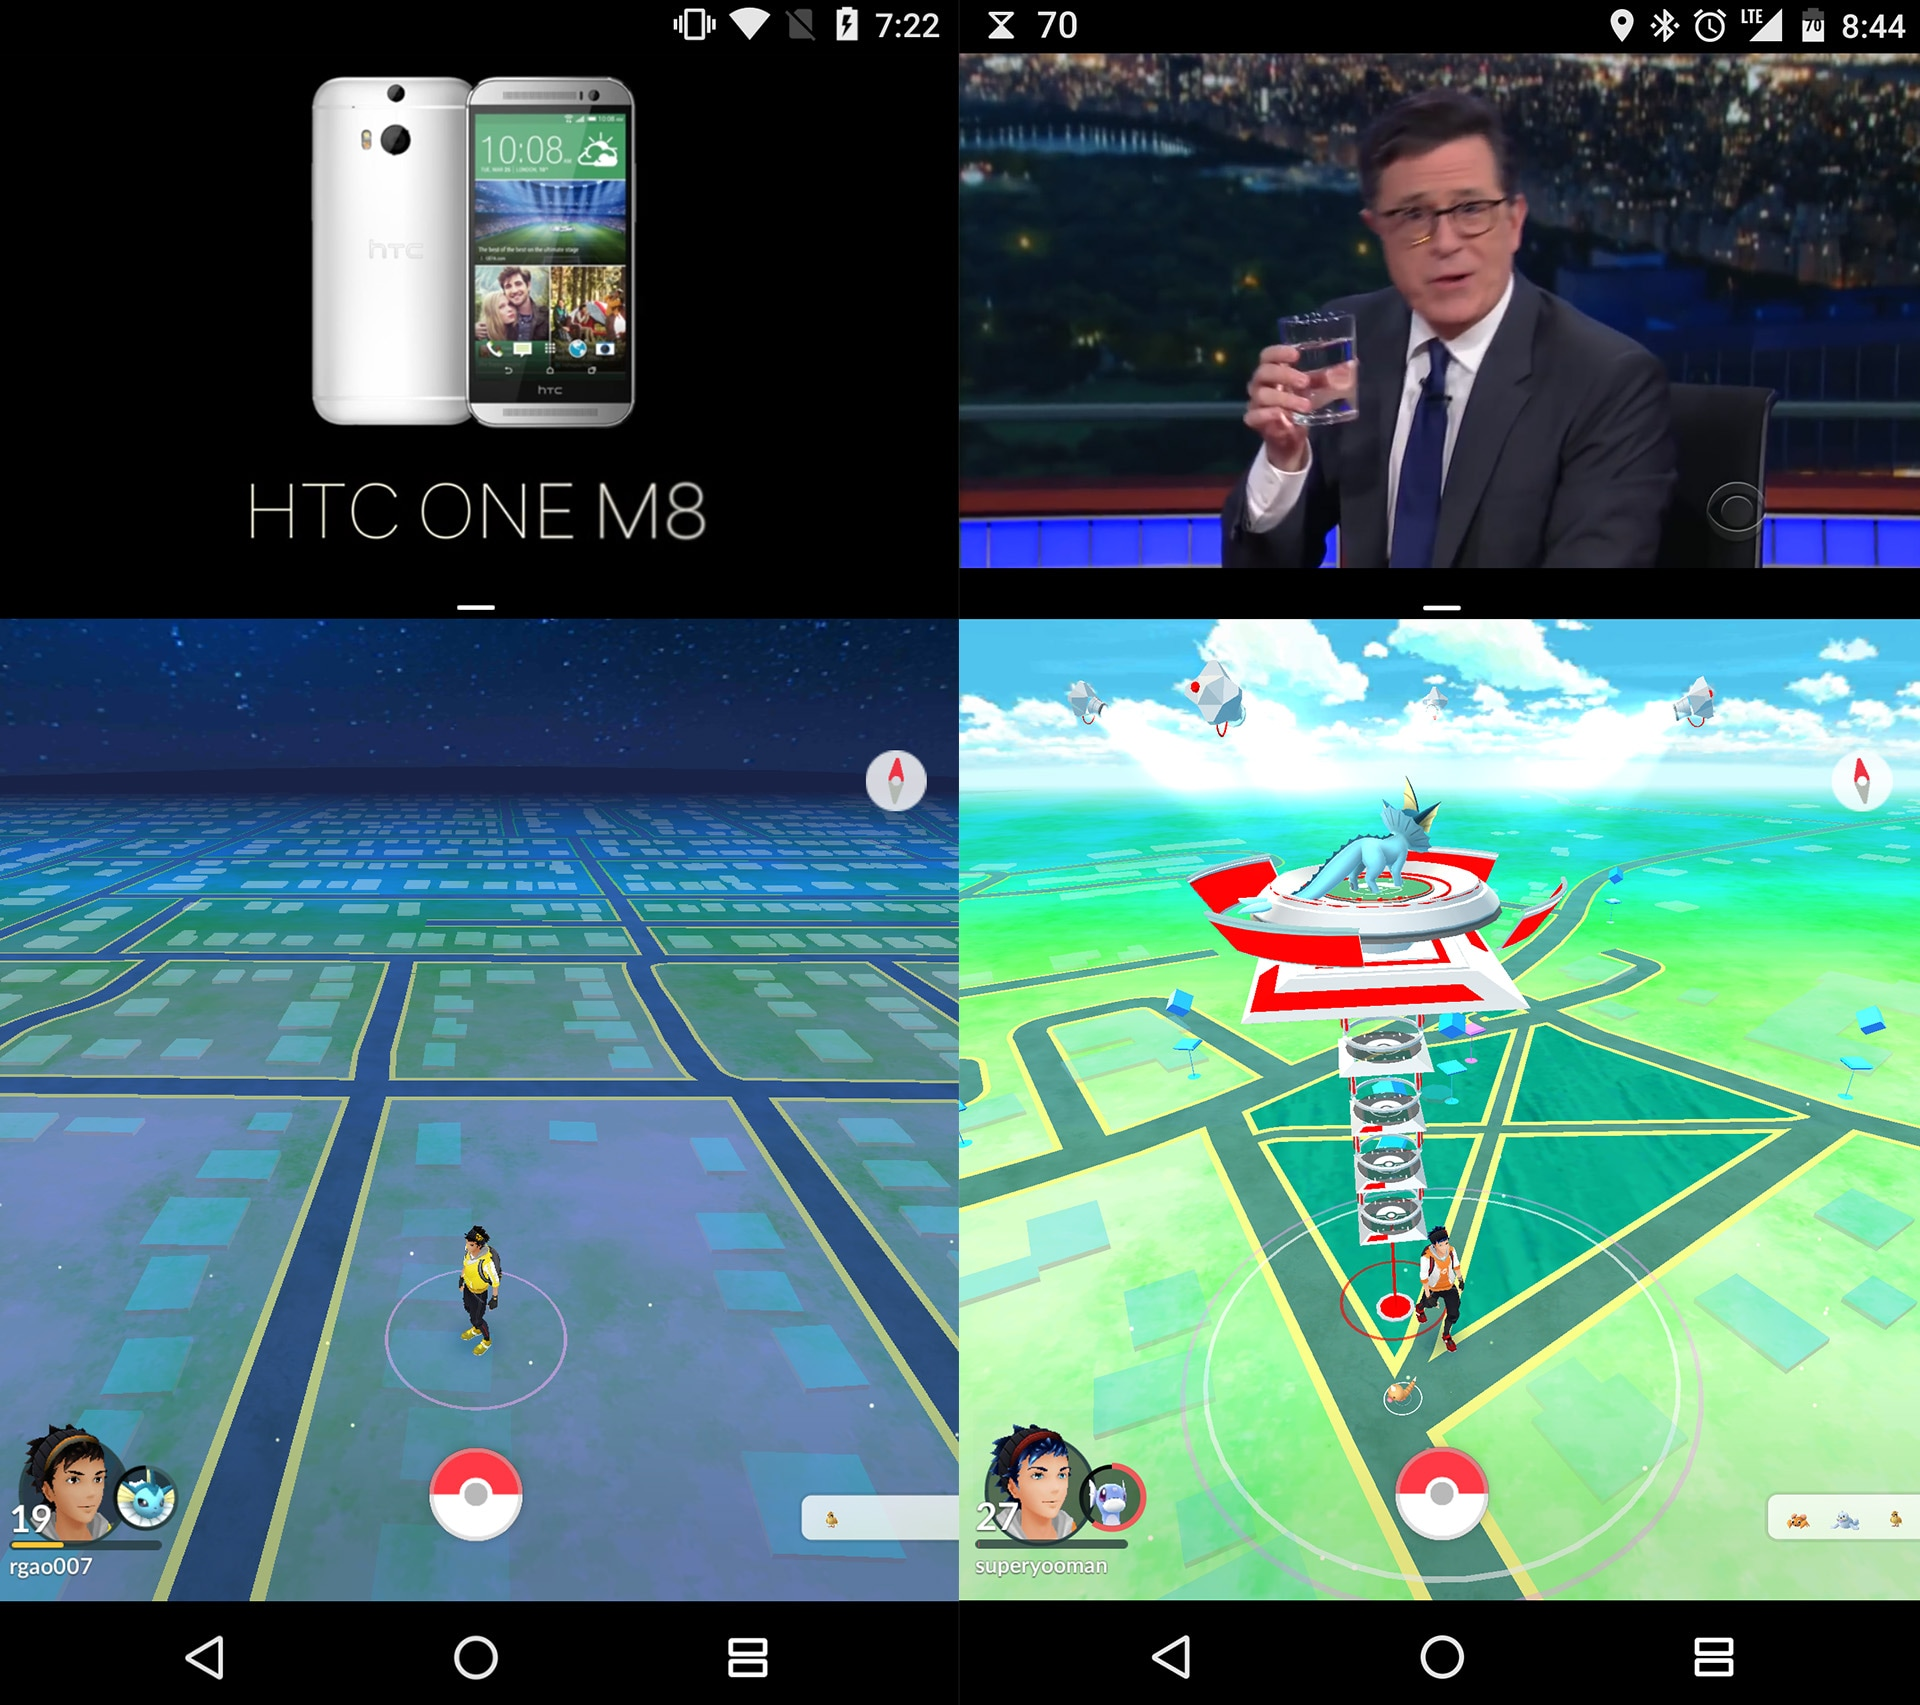 Come usare il multi-window di Nougat con Pokémon GO e altre app non supportate (no root)